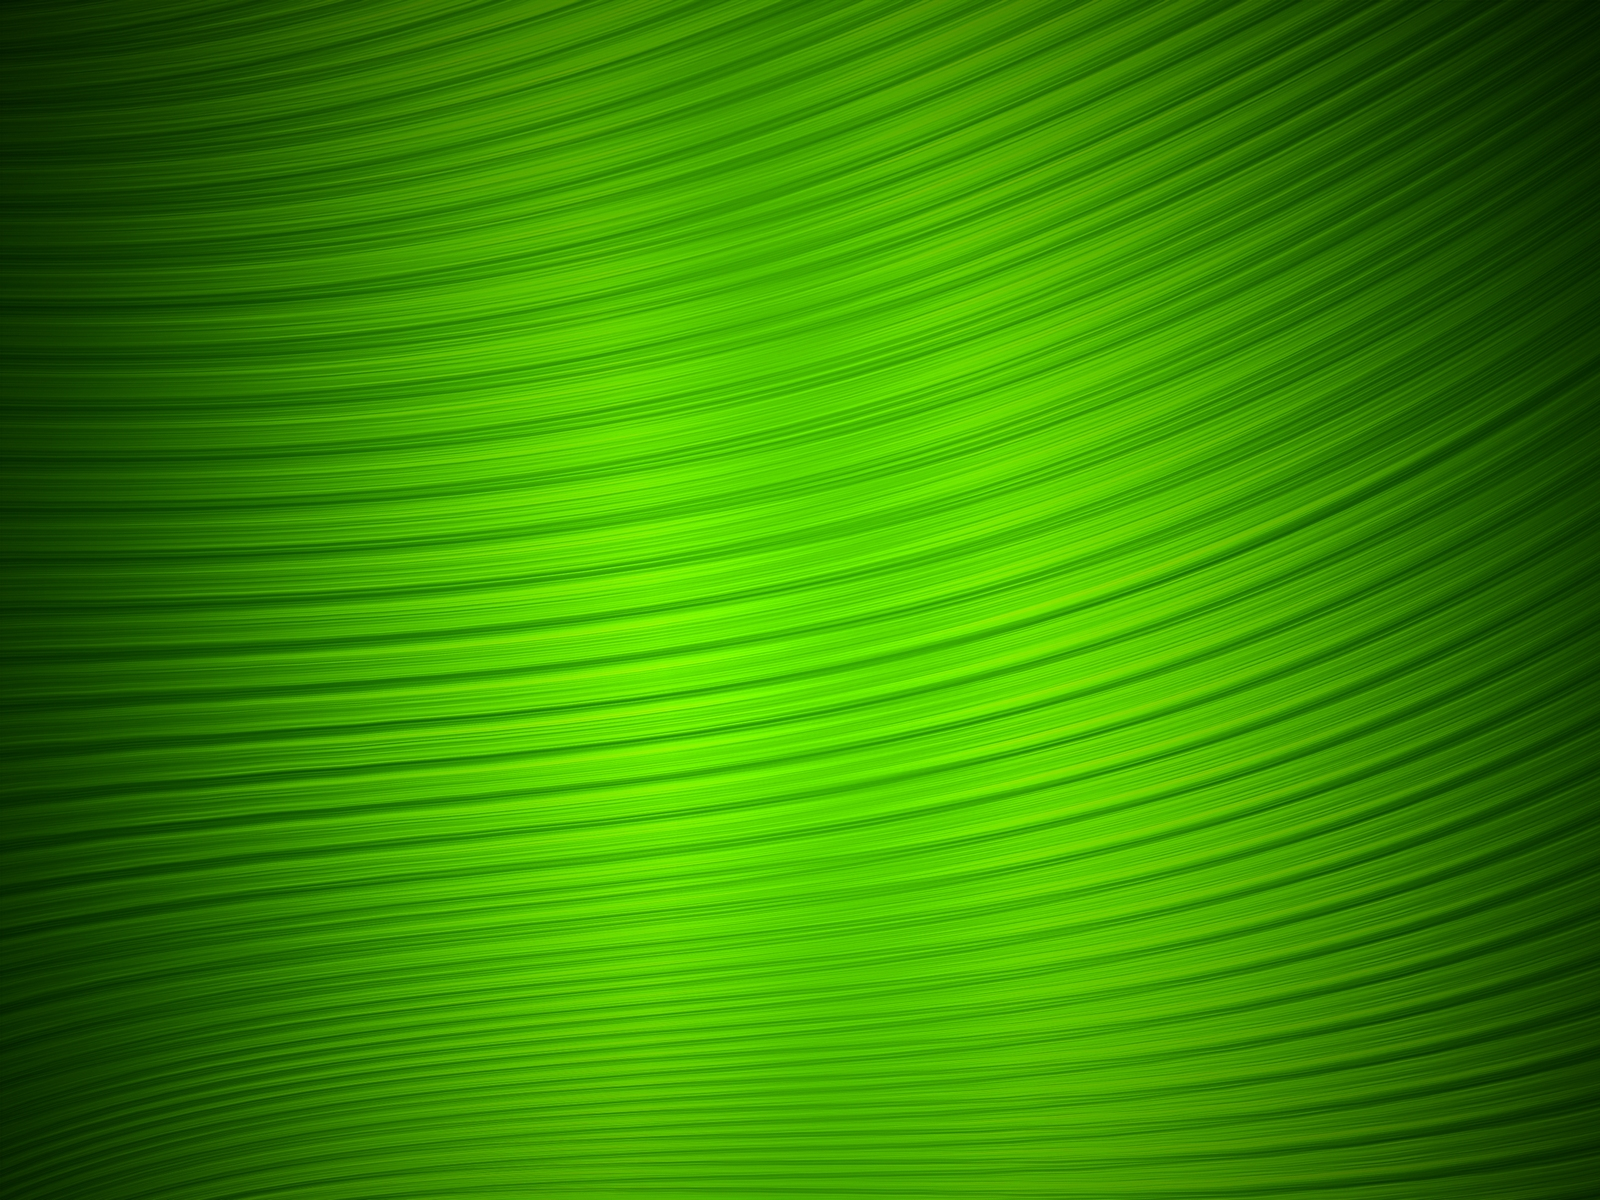 Green wallpaper   Green Wallpaper 23886940 1600x1200